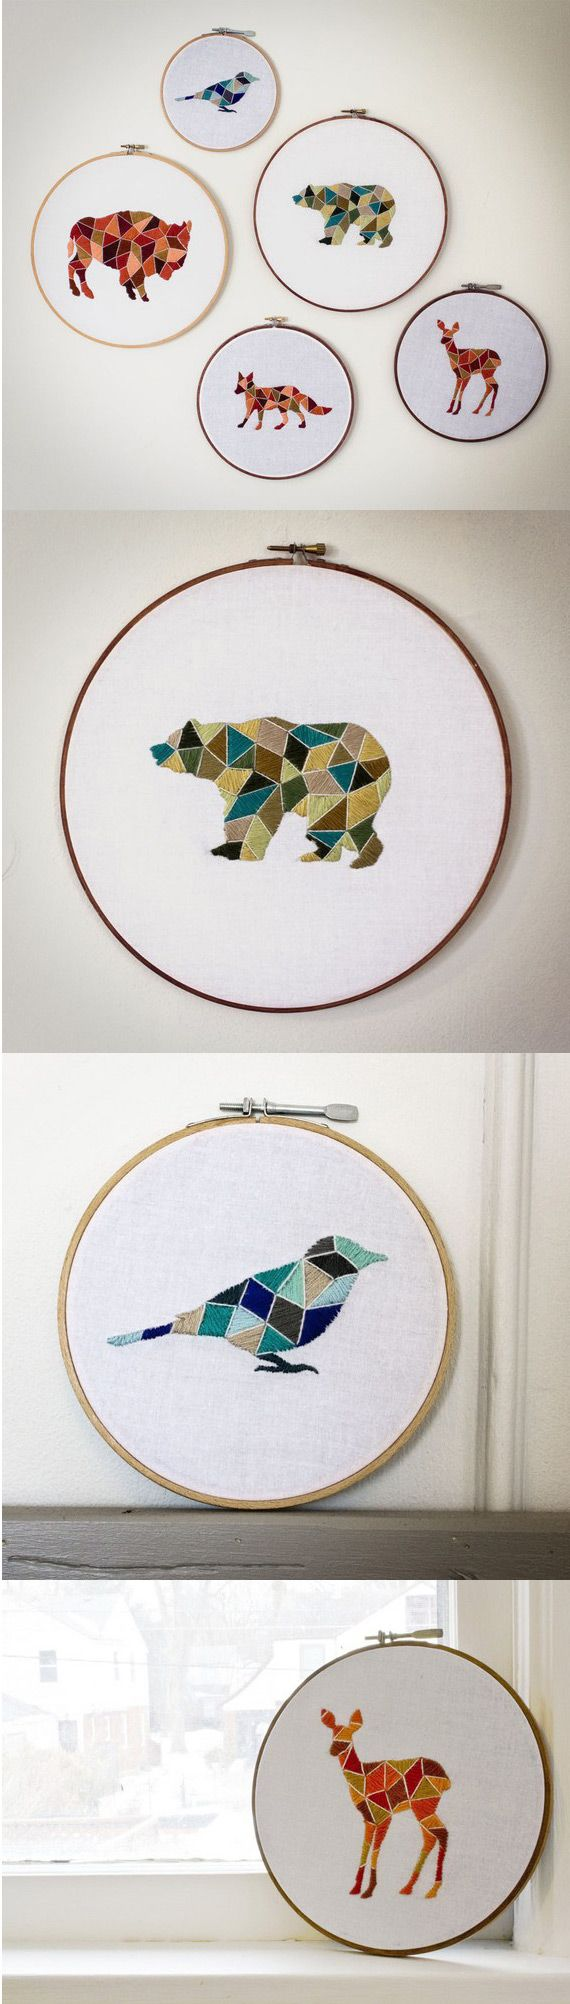 Cute animals geometric shapes stitching right up our